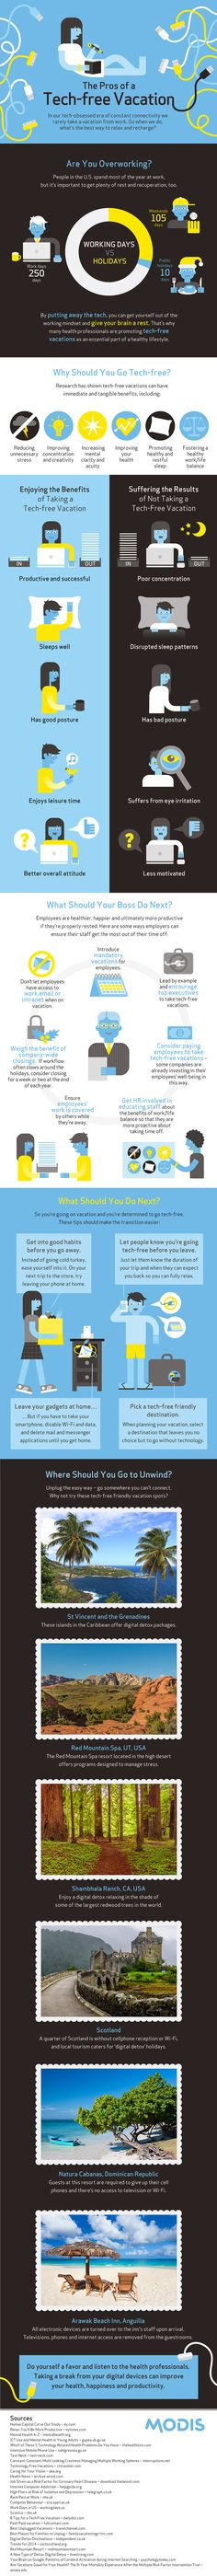 In this age and time, is it really possible to have a tech-free vacation? There are many benefits in doing a digital detox as explained in this infographic!